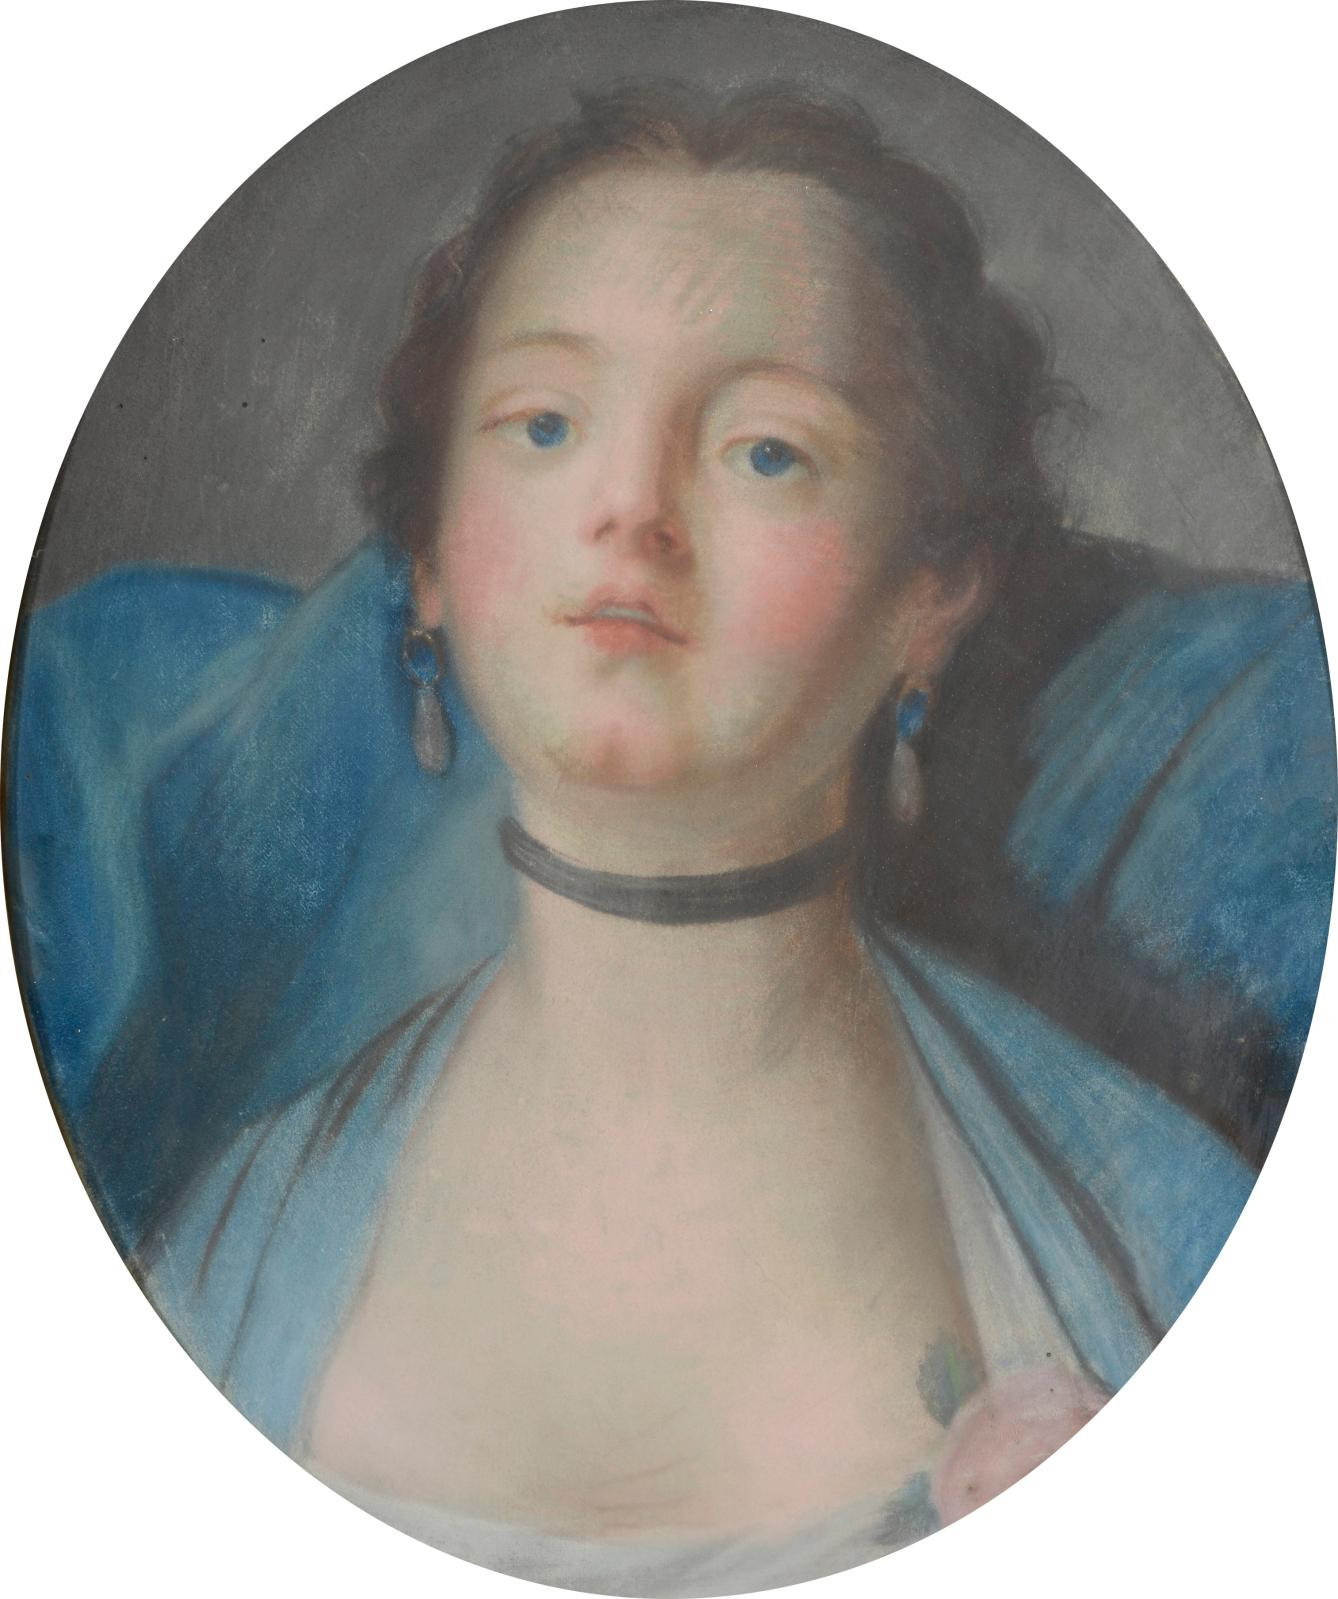 €148.8019th century French school, Portrait of a young woman in a choker with oval pastel, 41 x 34 cm (16.1 x 13.4 in).Drouot, July 11, 20